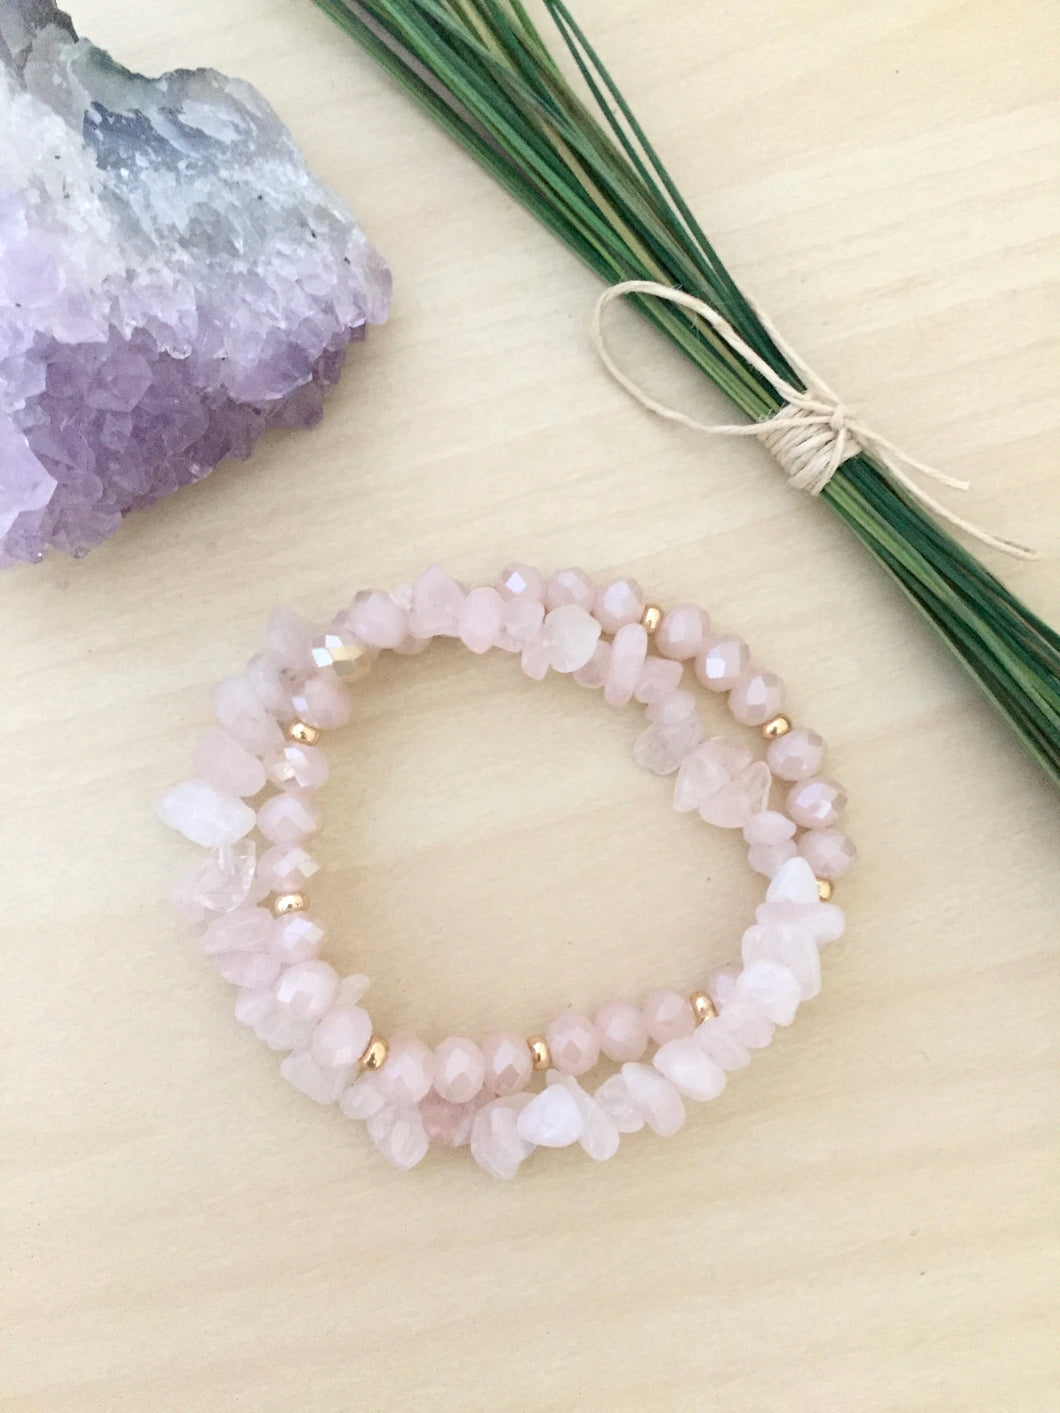 Rose Quartz Wrap Bracelet with Blush Pink and Gold beads